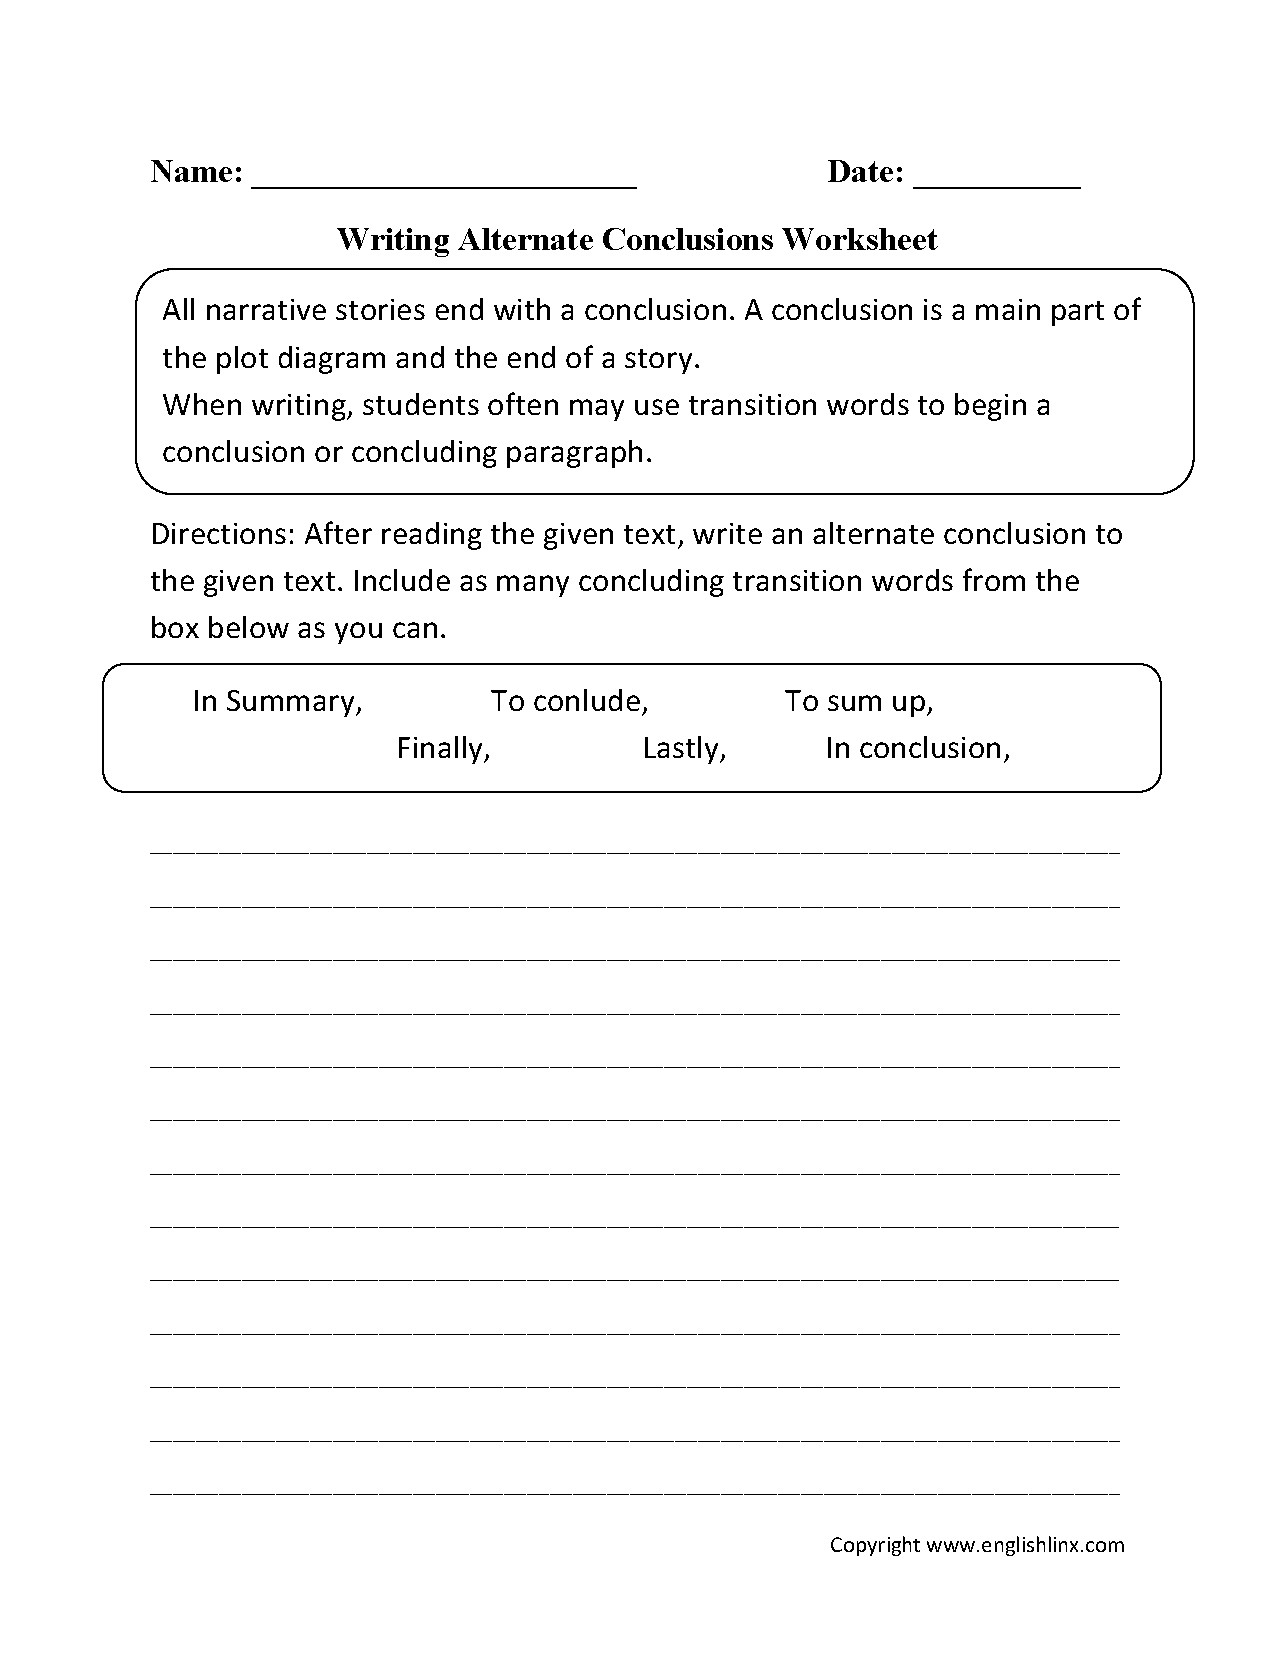 Summary Worksheets 5th Grade 027 Englishlinx Writing Conclusions Worksheets Pertaining to